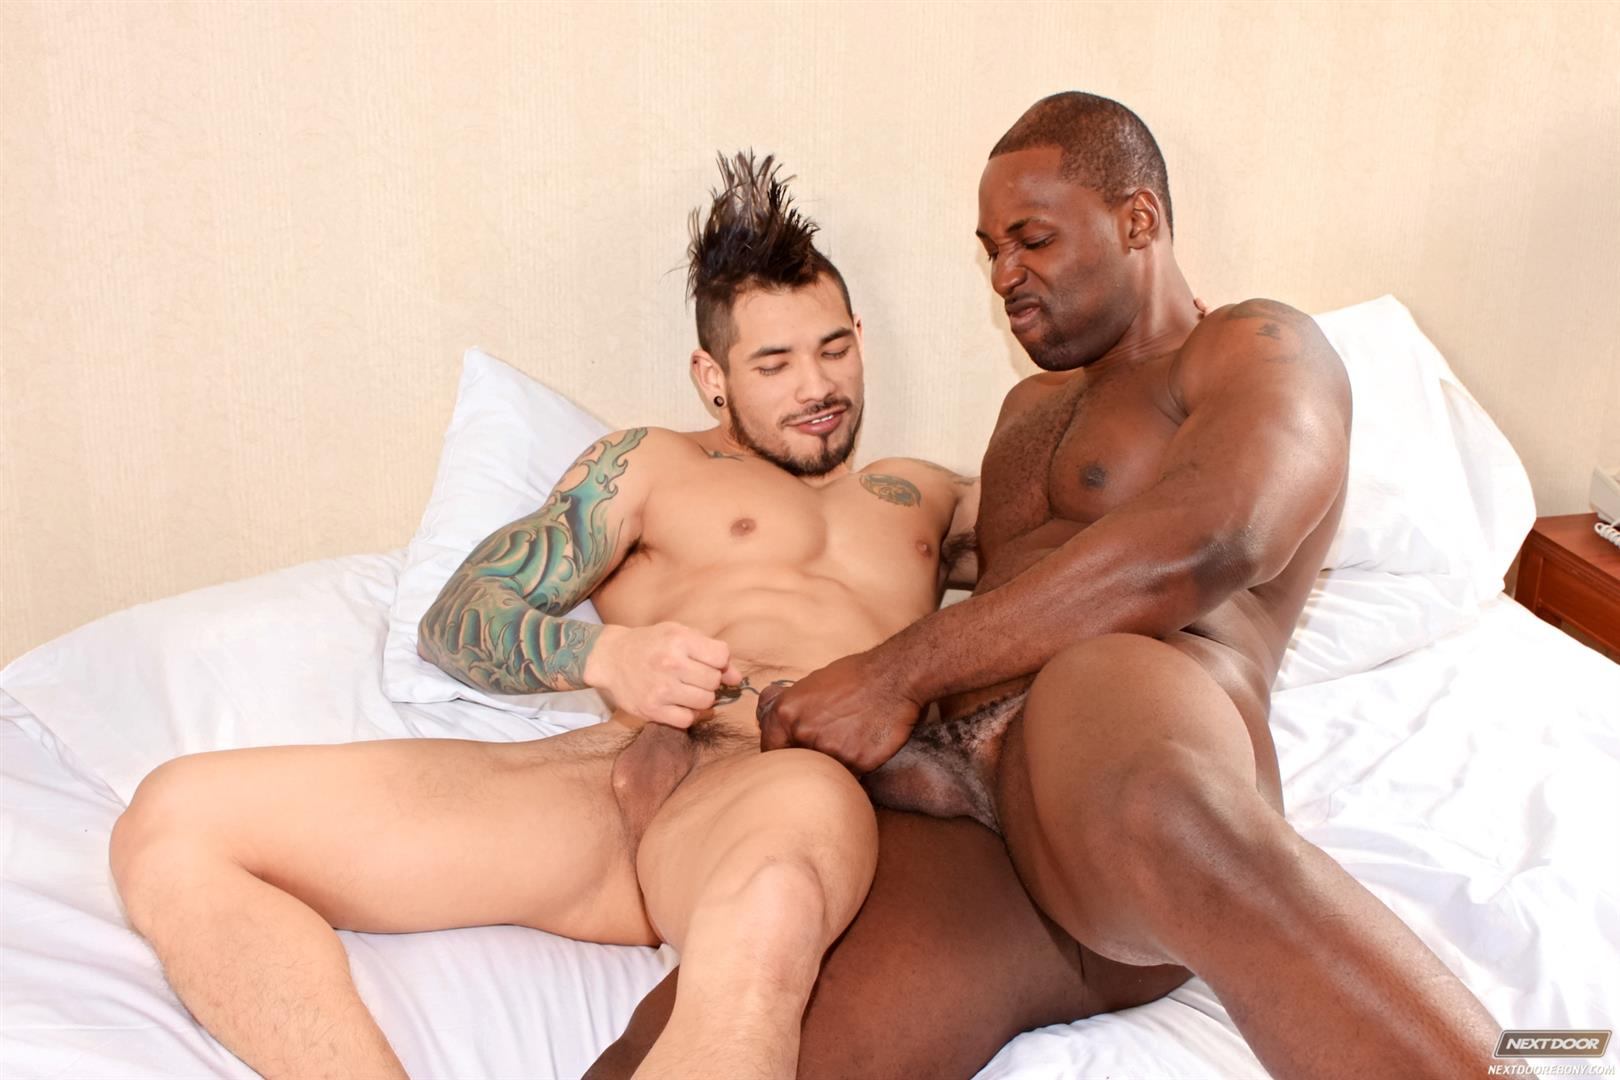 Next-Door-Ebony-Nubius-and-Draven-Torres-Big-Black-Cock-Fucking-Tight-Latino-Ass-Amateur-Gay-Porn-14 Big Black Bull Fucks A Young Latino Hipster With His Big Black Cock